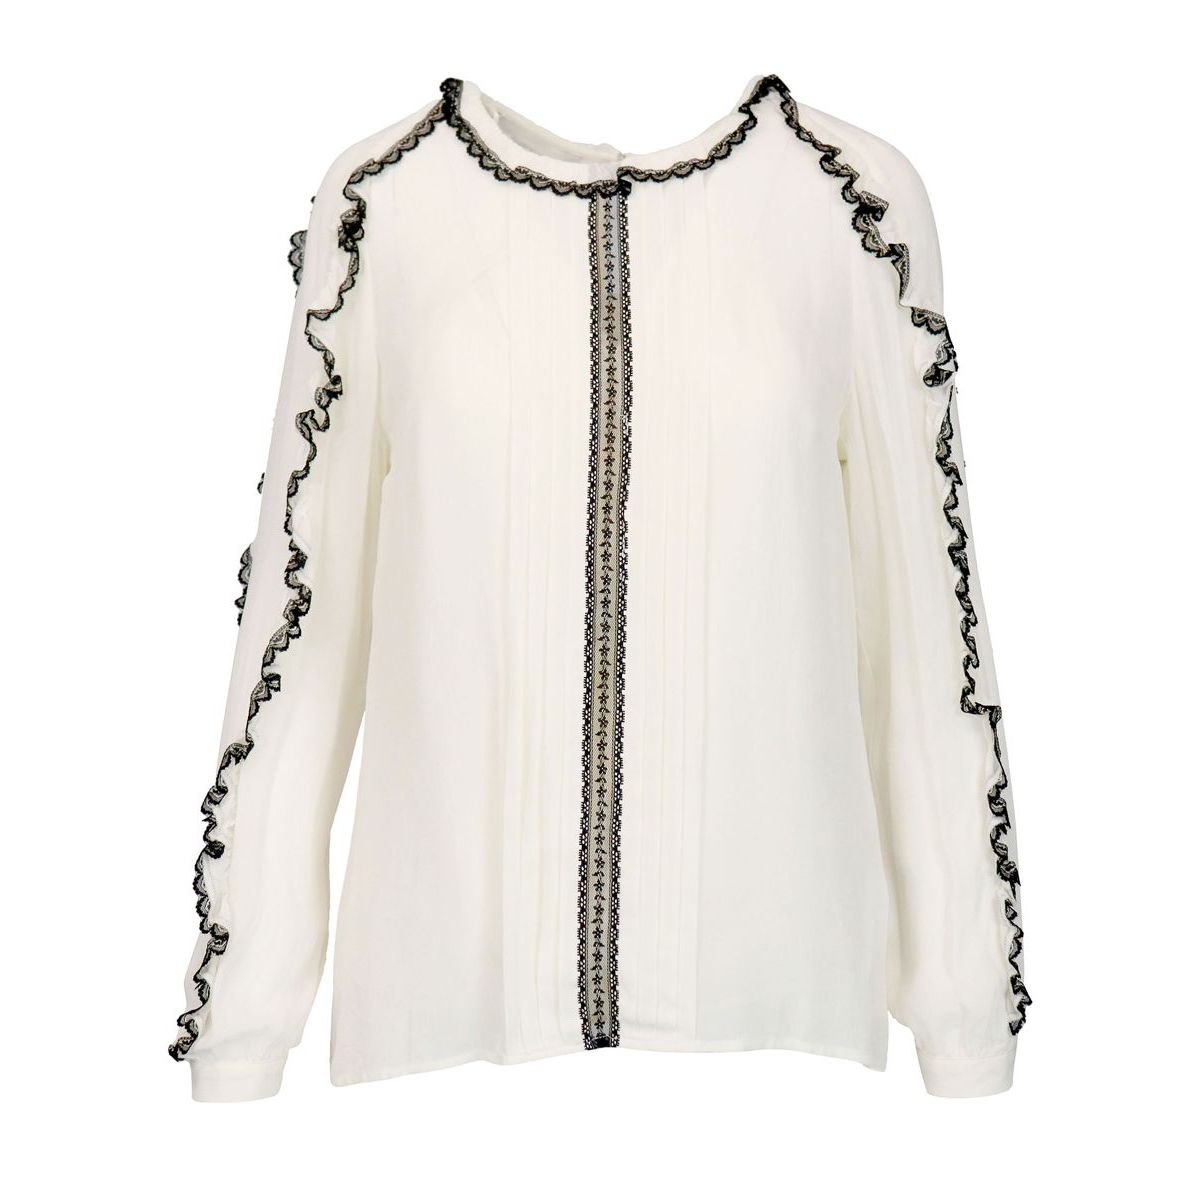 Blouse in georgette with frill inserts finished in lace White black Twin-Set